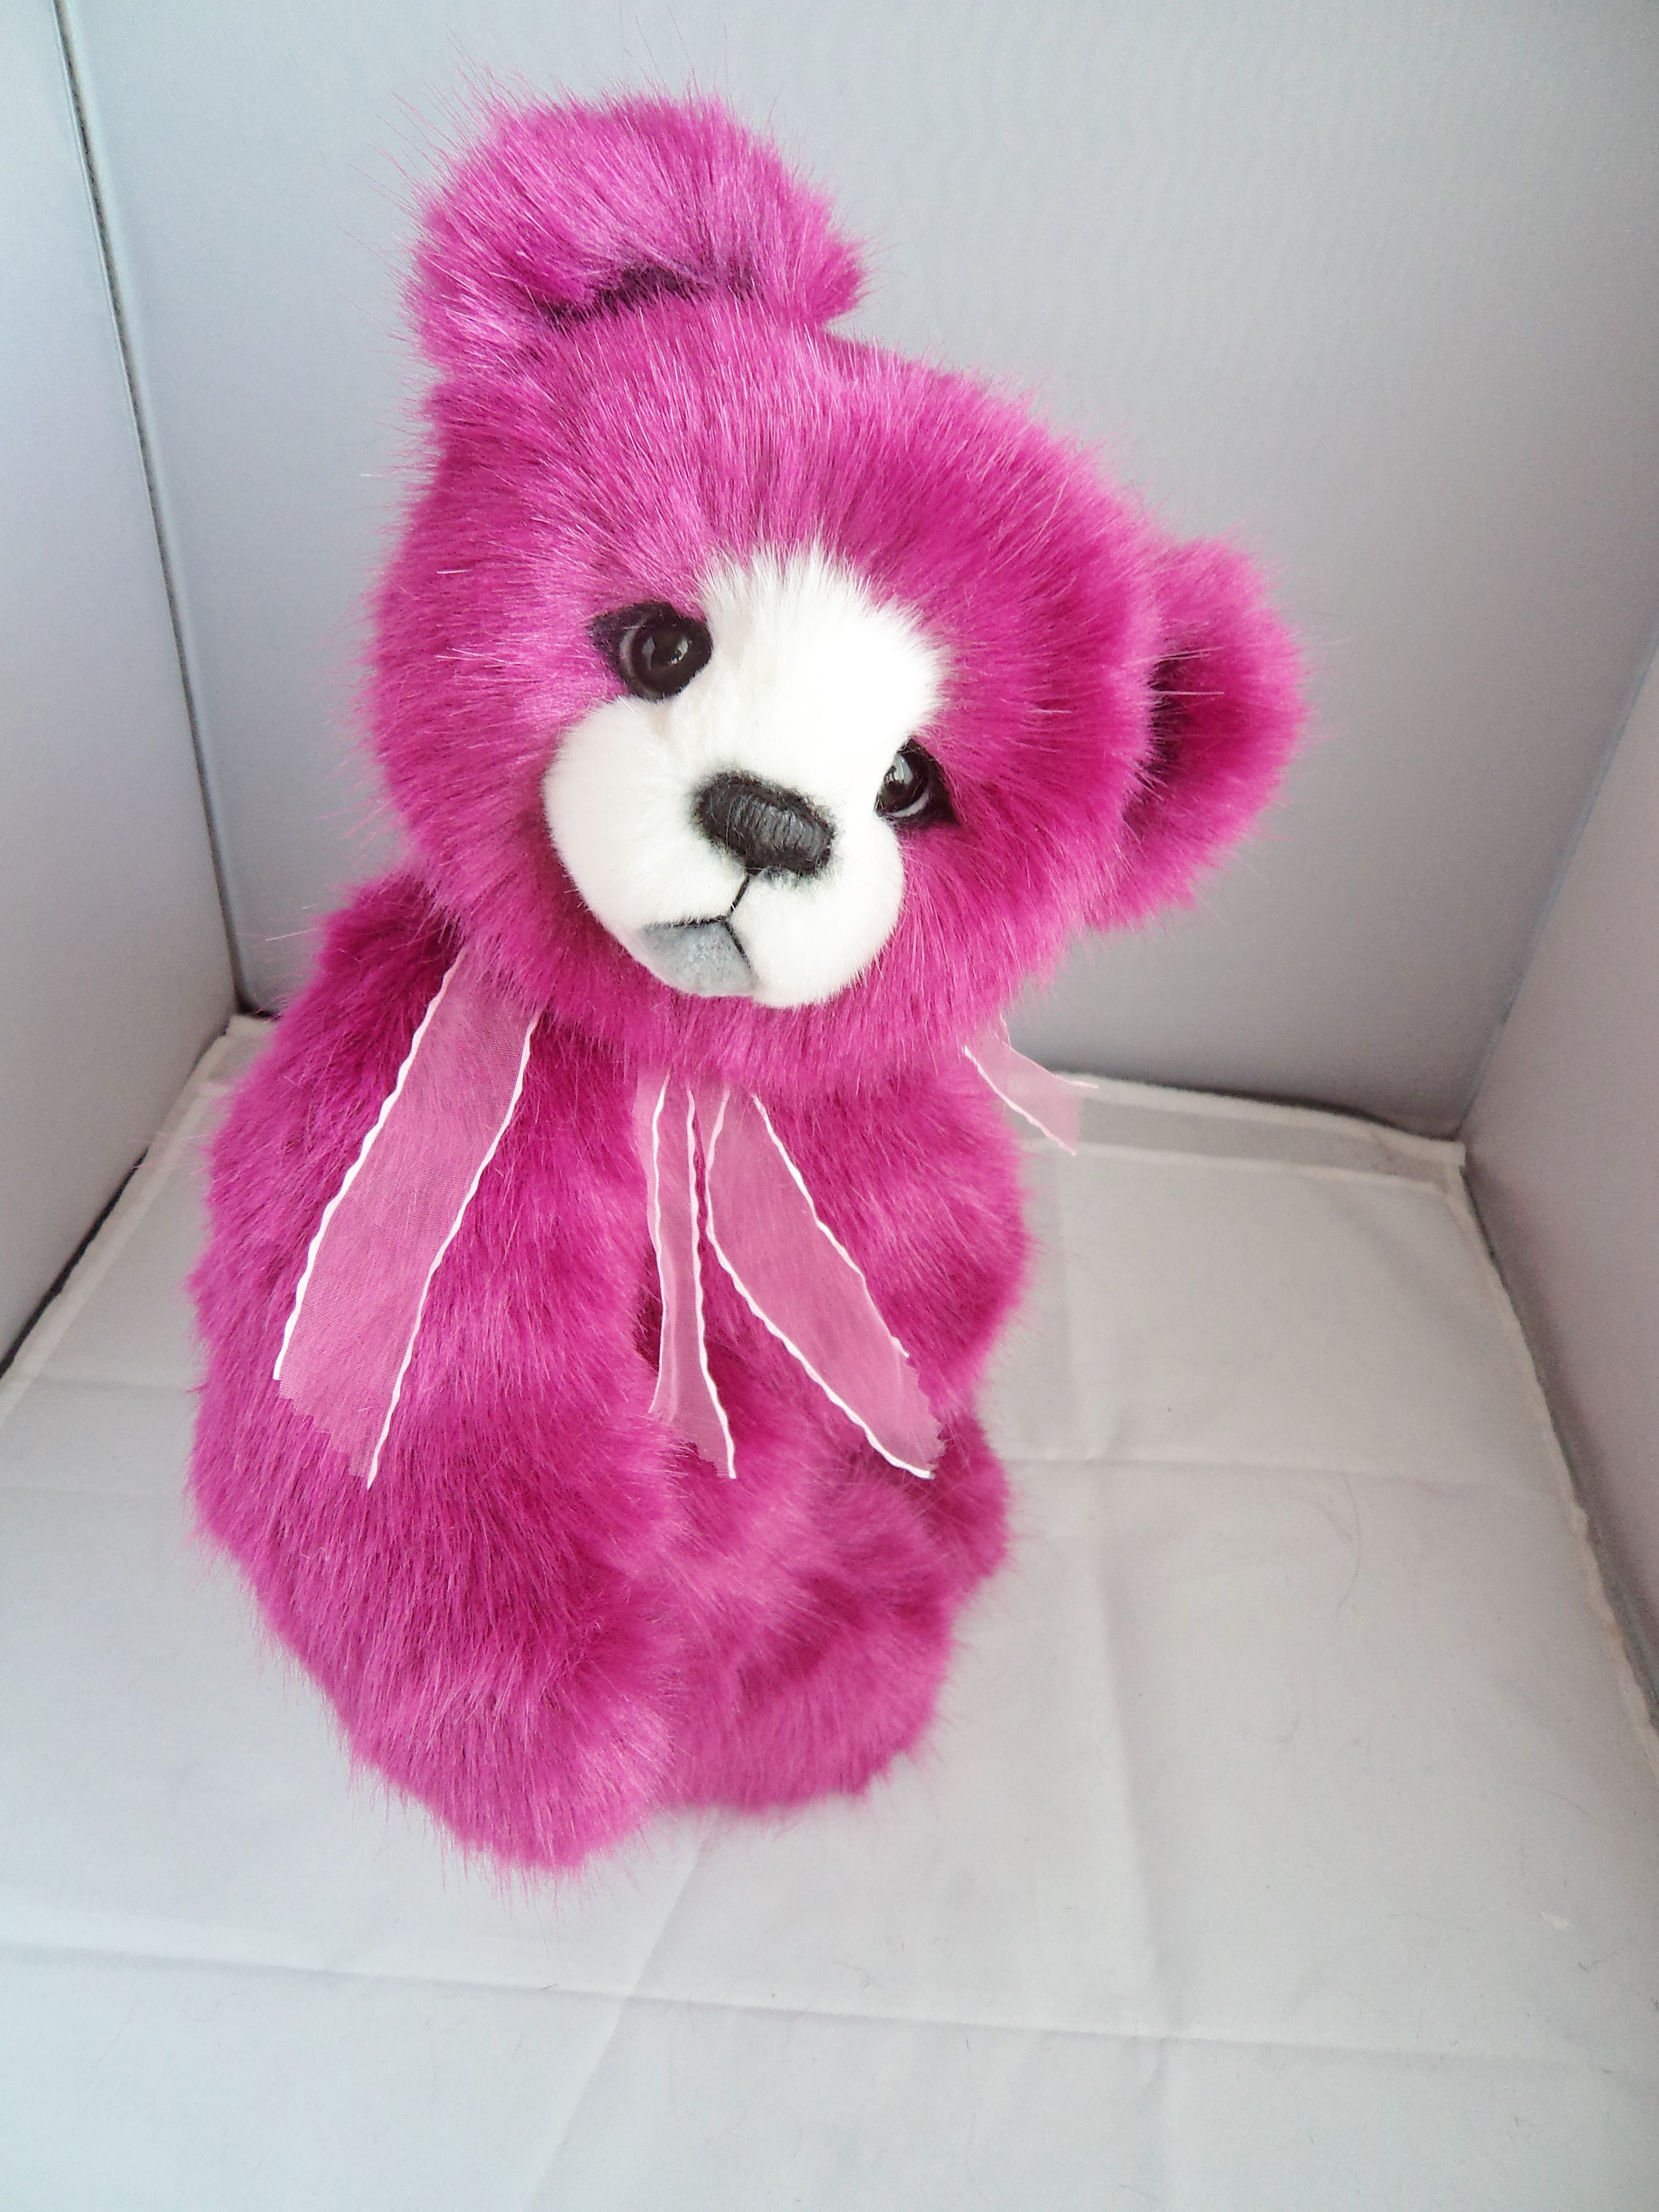 Please meet Azalea who is 13 inches tall, heavily weighted and one of a kind bears. Azalea is 5 way jointed and is available for immediate adoption, As Tiny and I are celebrating our birthdays, I am offering free UK postage, with that said Azalea's adoption fee is £80.00 which includes postage within the UK.